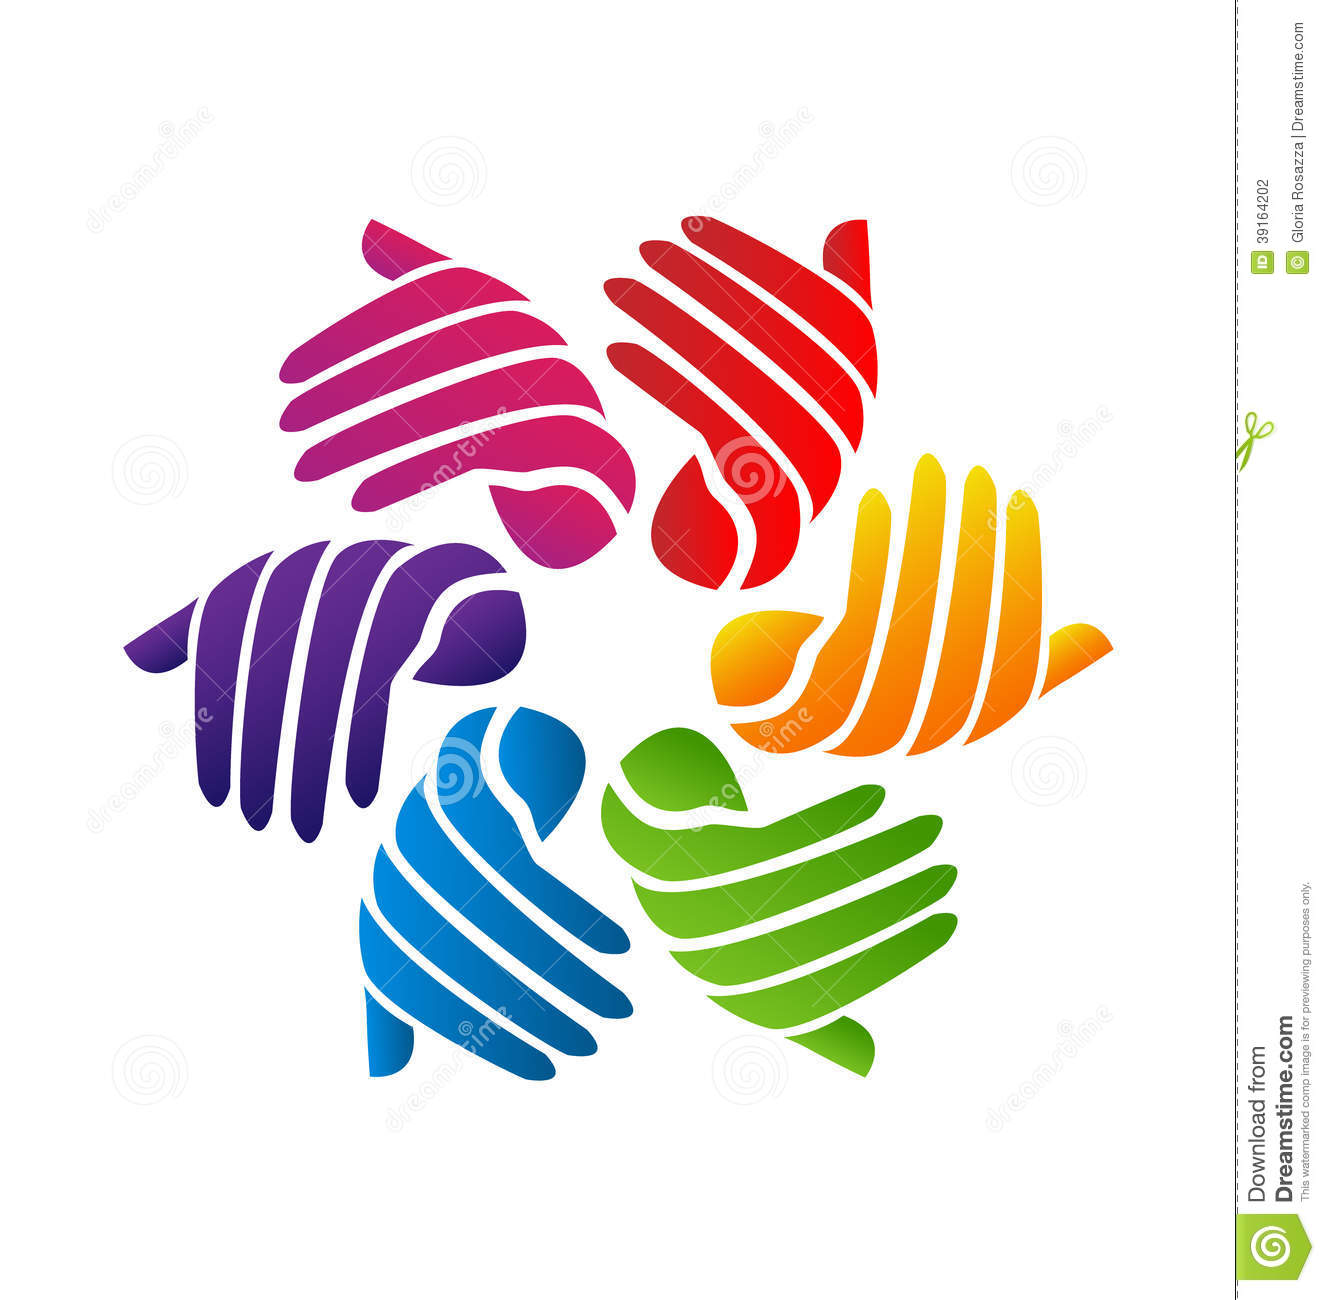 Hands Colorful Logo Stock Vector - Image: 39164202